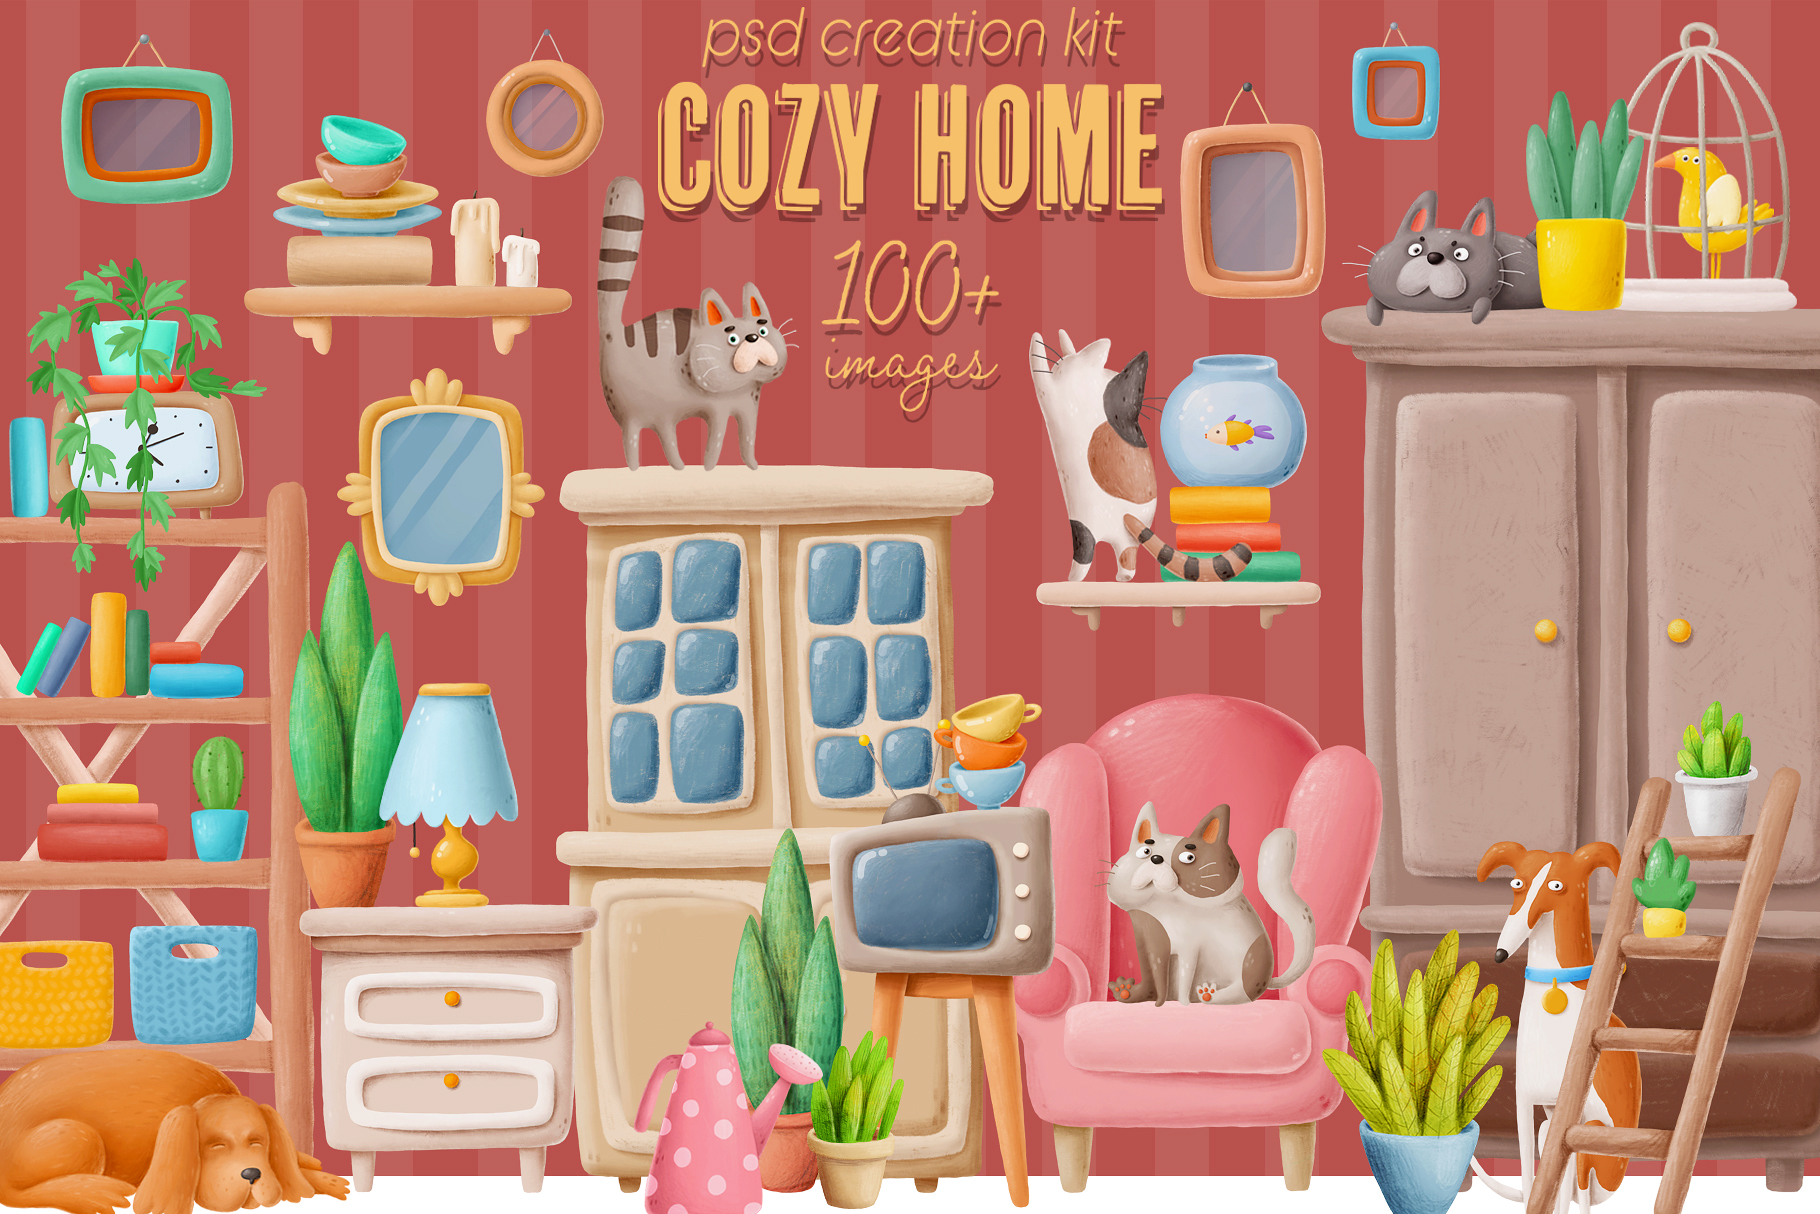 Cozy Home creation kit example image 1